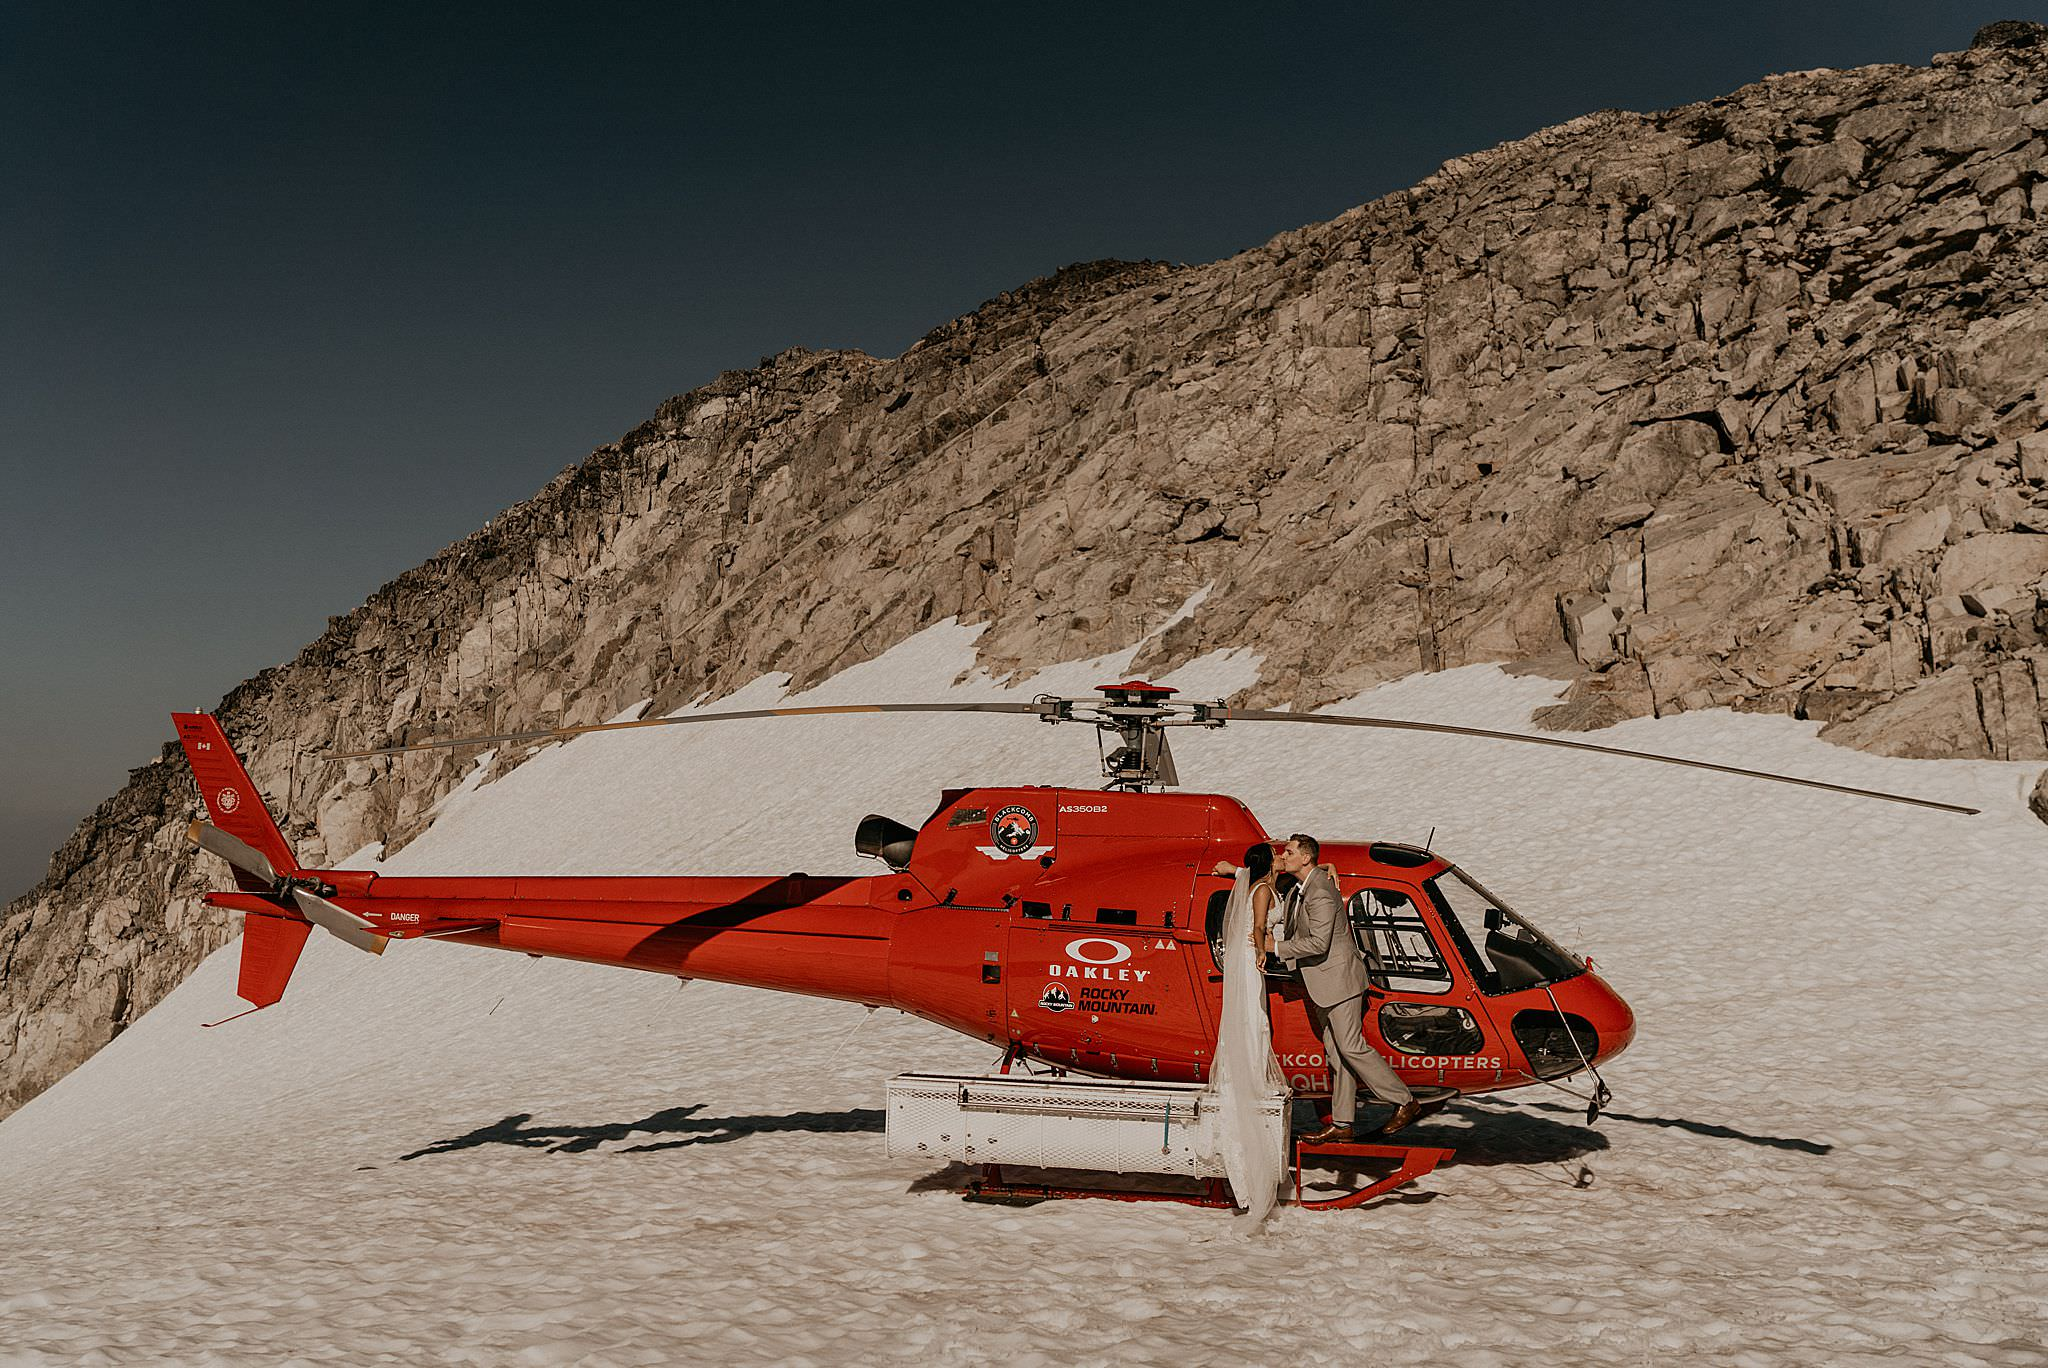 Helicopter elopement in whistler Canada in the snow and glacier